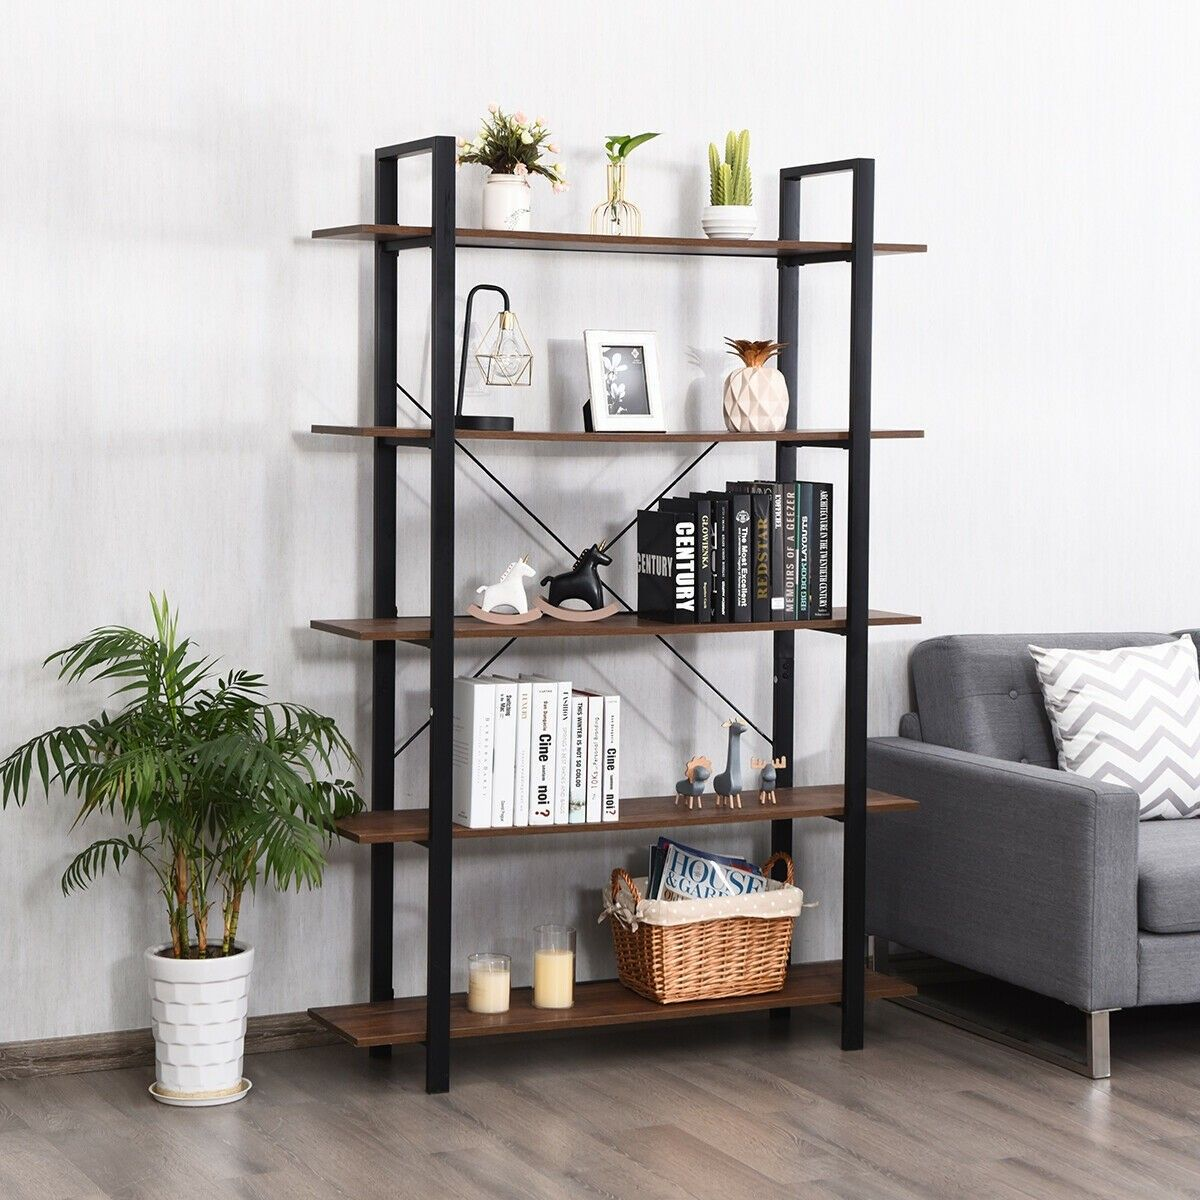 5 Tiers Bookshelf Industrial Bookcases Metal Frame Shelf Stand